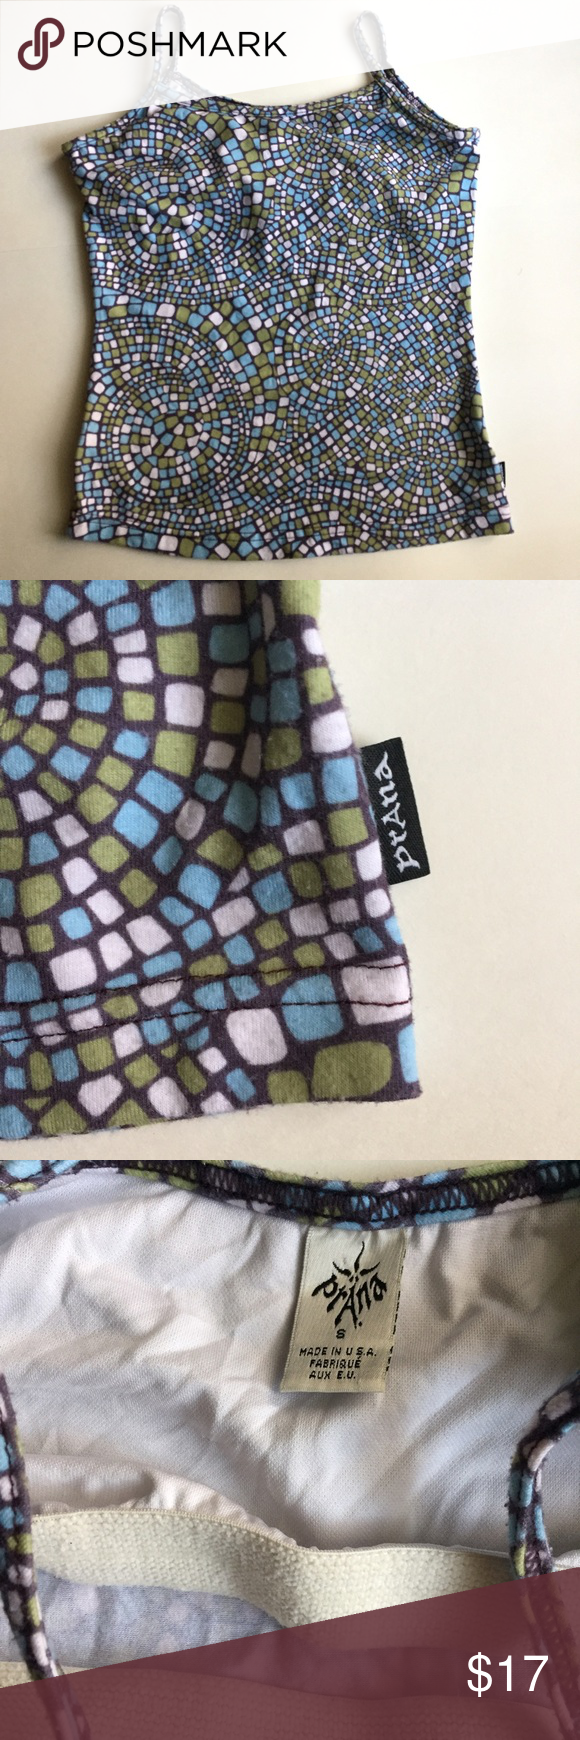 PrAna Mosaic Print Tank Blue, green, black and white print; shelf lined bra. Preloved condition, no stains or flaws. Size Small. Please see photos for measurements. Prana Tops Tank Tops